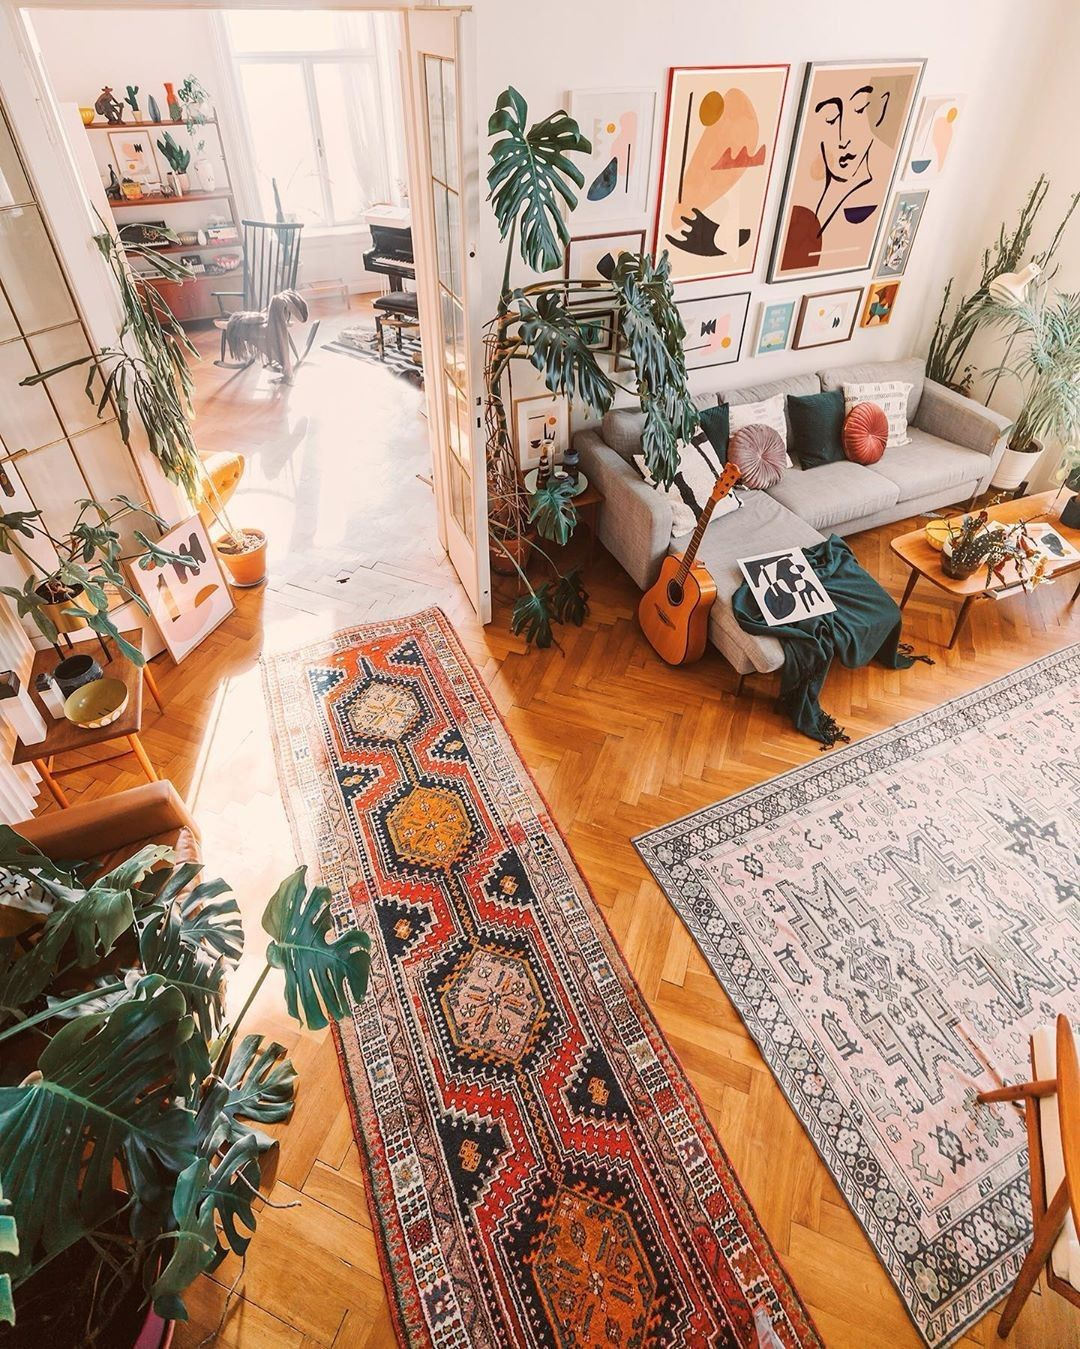 Bohemian Latest And Stylish Home decor Design And Life Style Ideas #décorationmaison